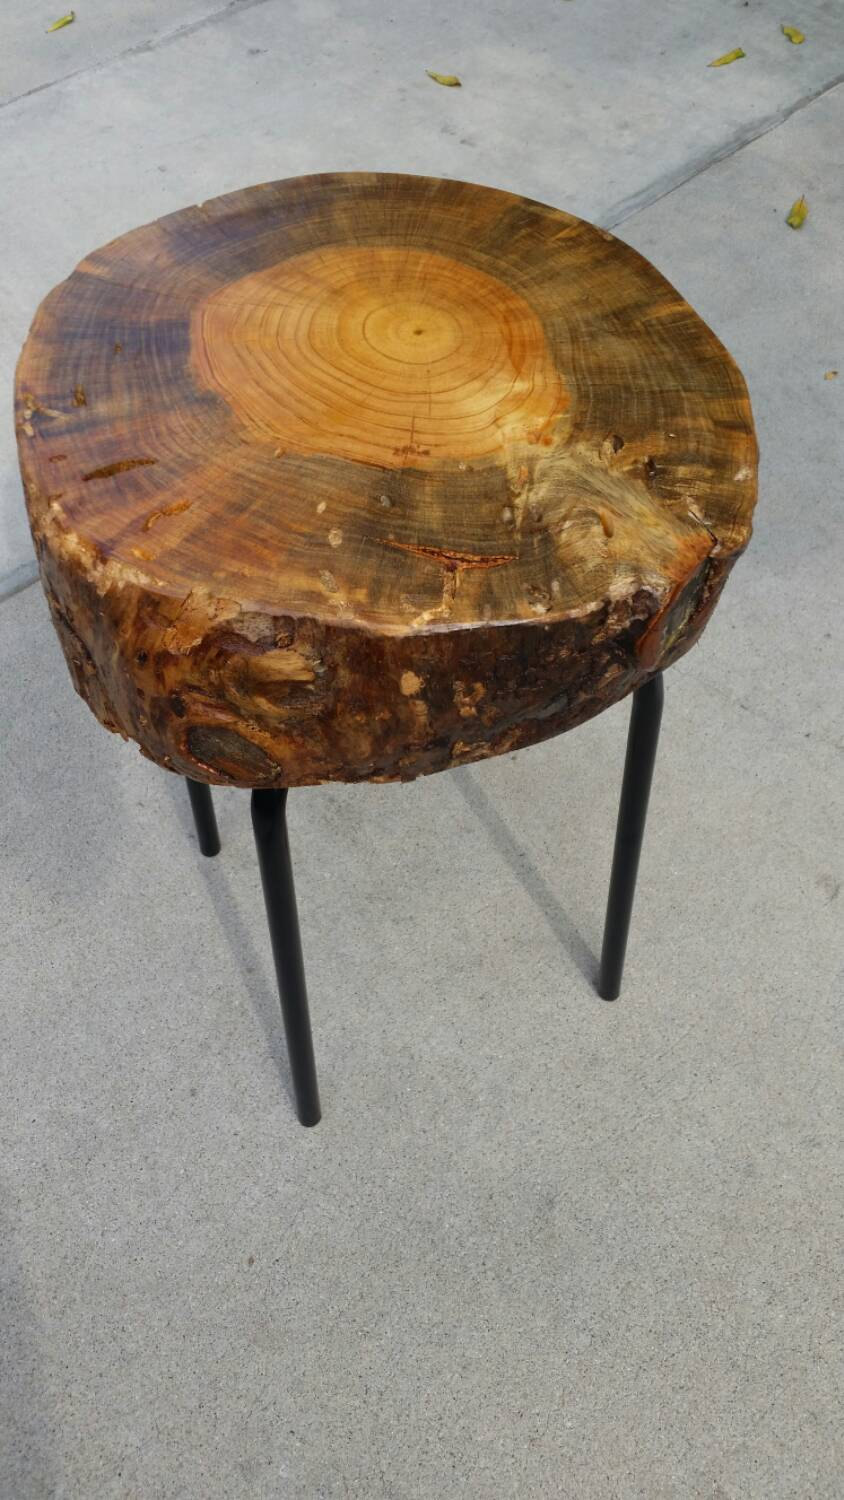 silver tree stump coffee table design ideas live edge reclaimed side accent brown threshold tiffany peacock lamp bunnings swing seat desk large patio cover tall entryway cabinet